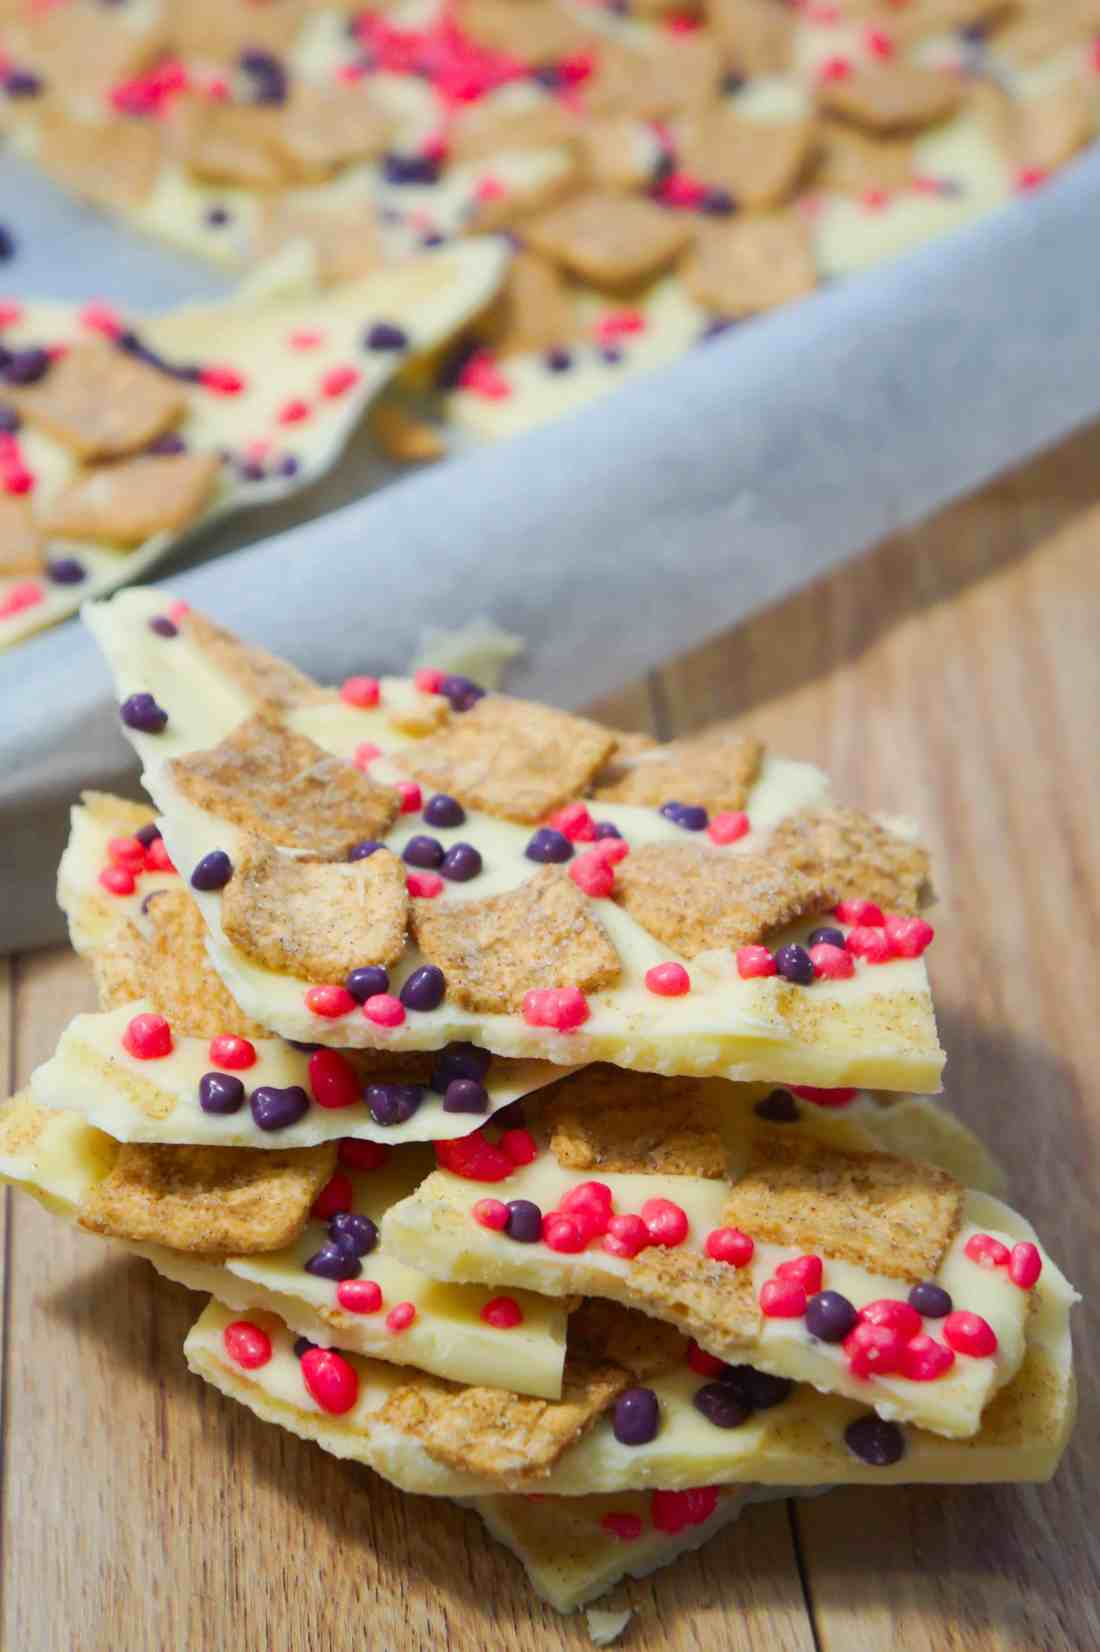 Cinnamon Toast Crunch White Chocolate Bark is an easy no bake dessert recipe. This white chocolate dessert is loaded with Cinnamon Toast Crunch Cereal and pink and purple Nerds candies.